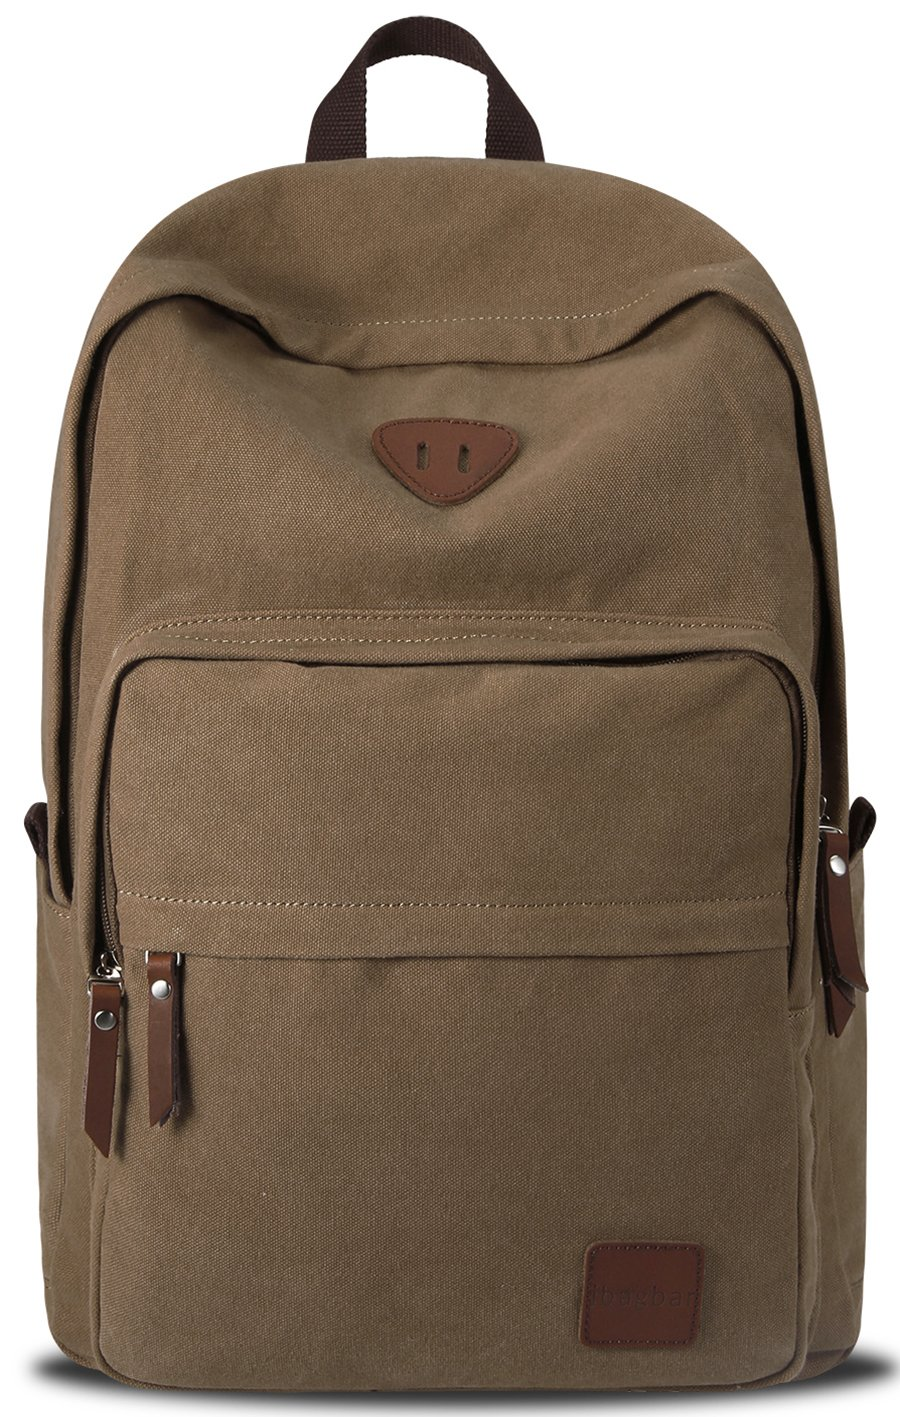 0cb2de9577 low-cost Ibagbar Vintage Canvas Backpack Rucksack Laptop Bag Computer Bag  Daypack Travel Bag College